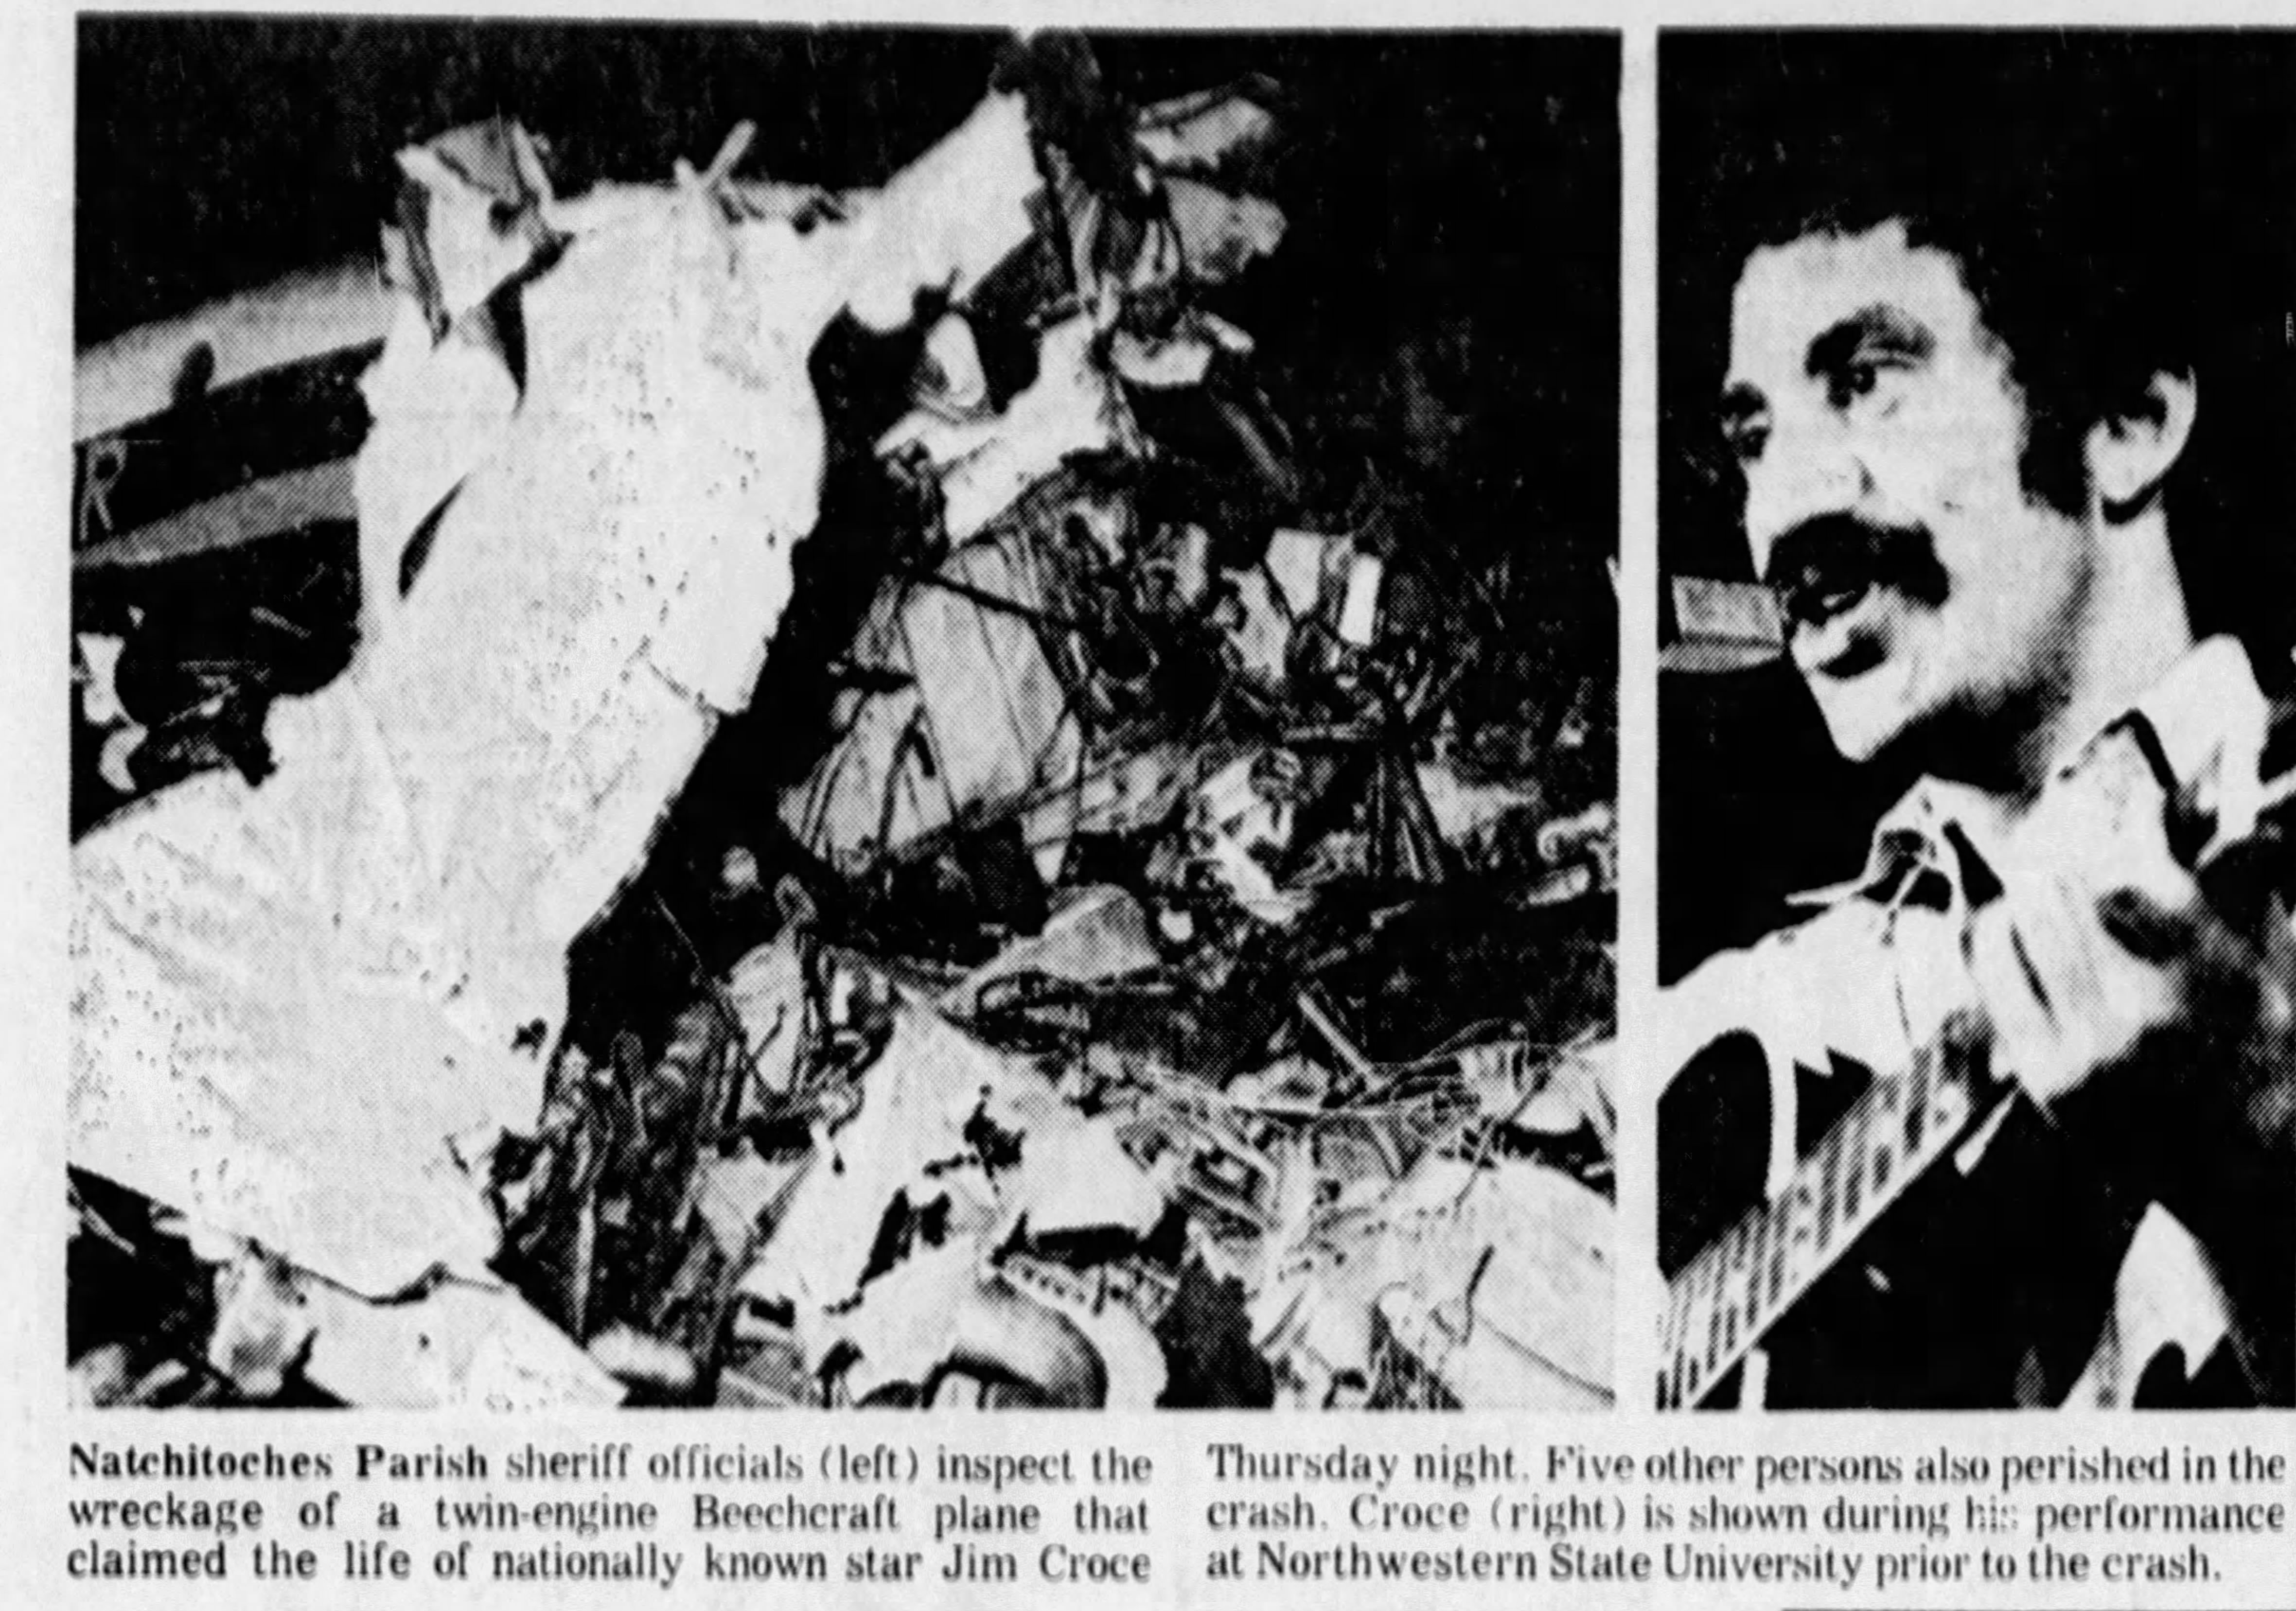 From The Shreveport Times, Natchitoches News Bureau, Sept. 22, 1973